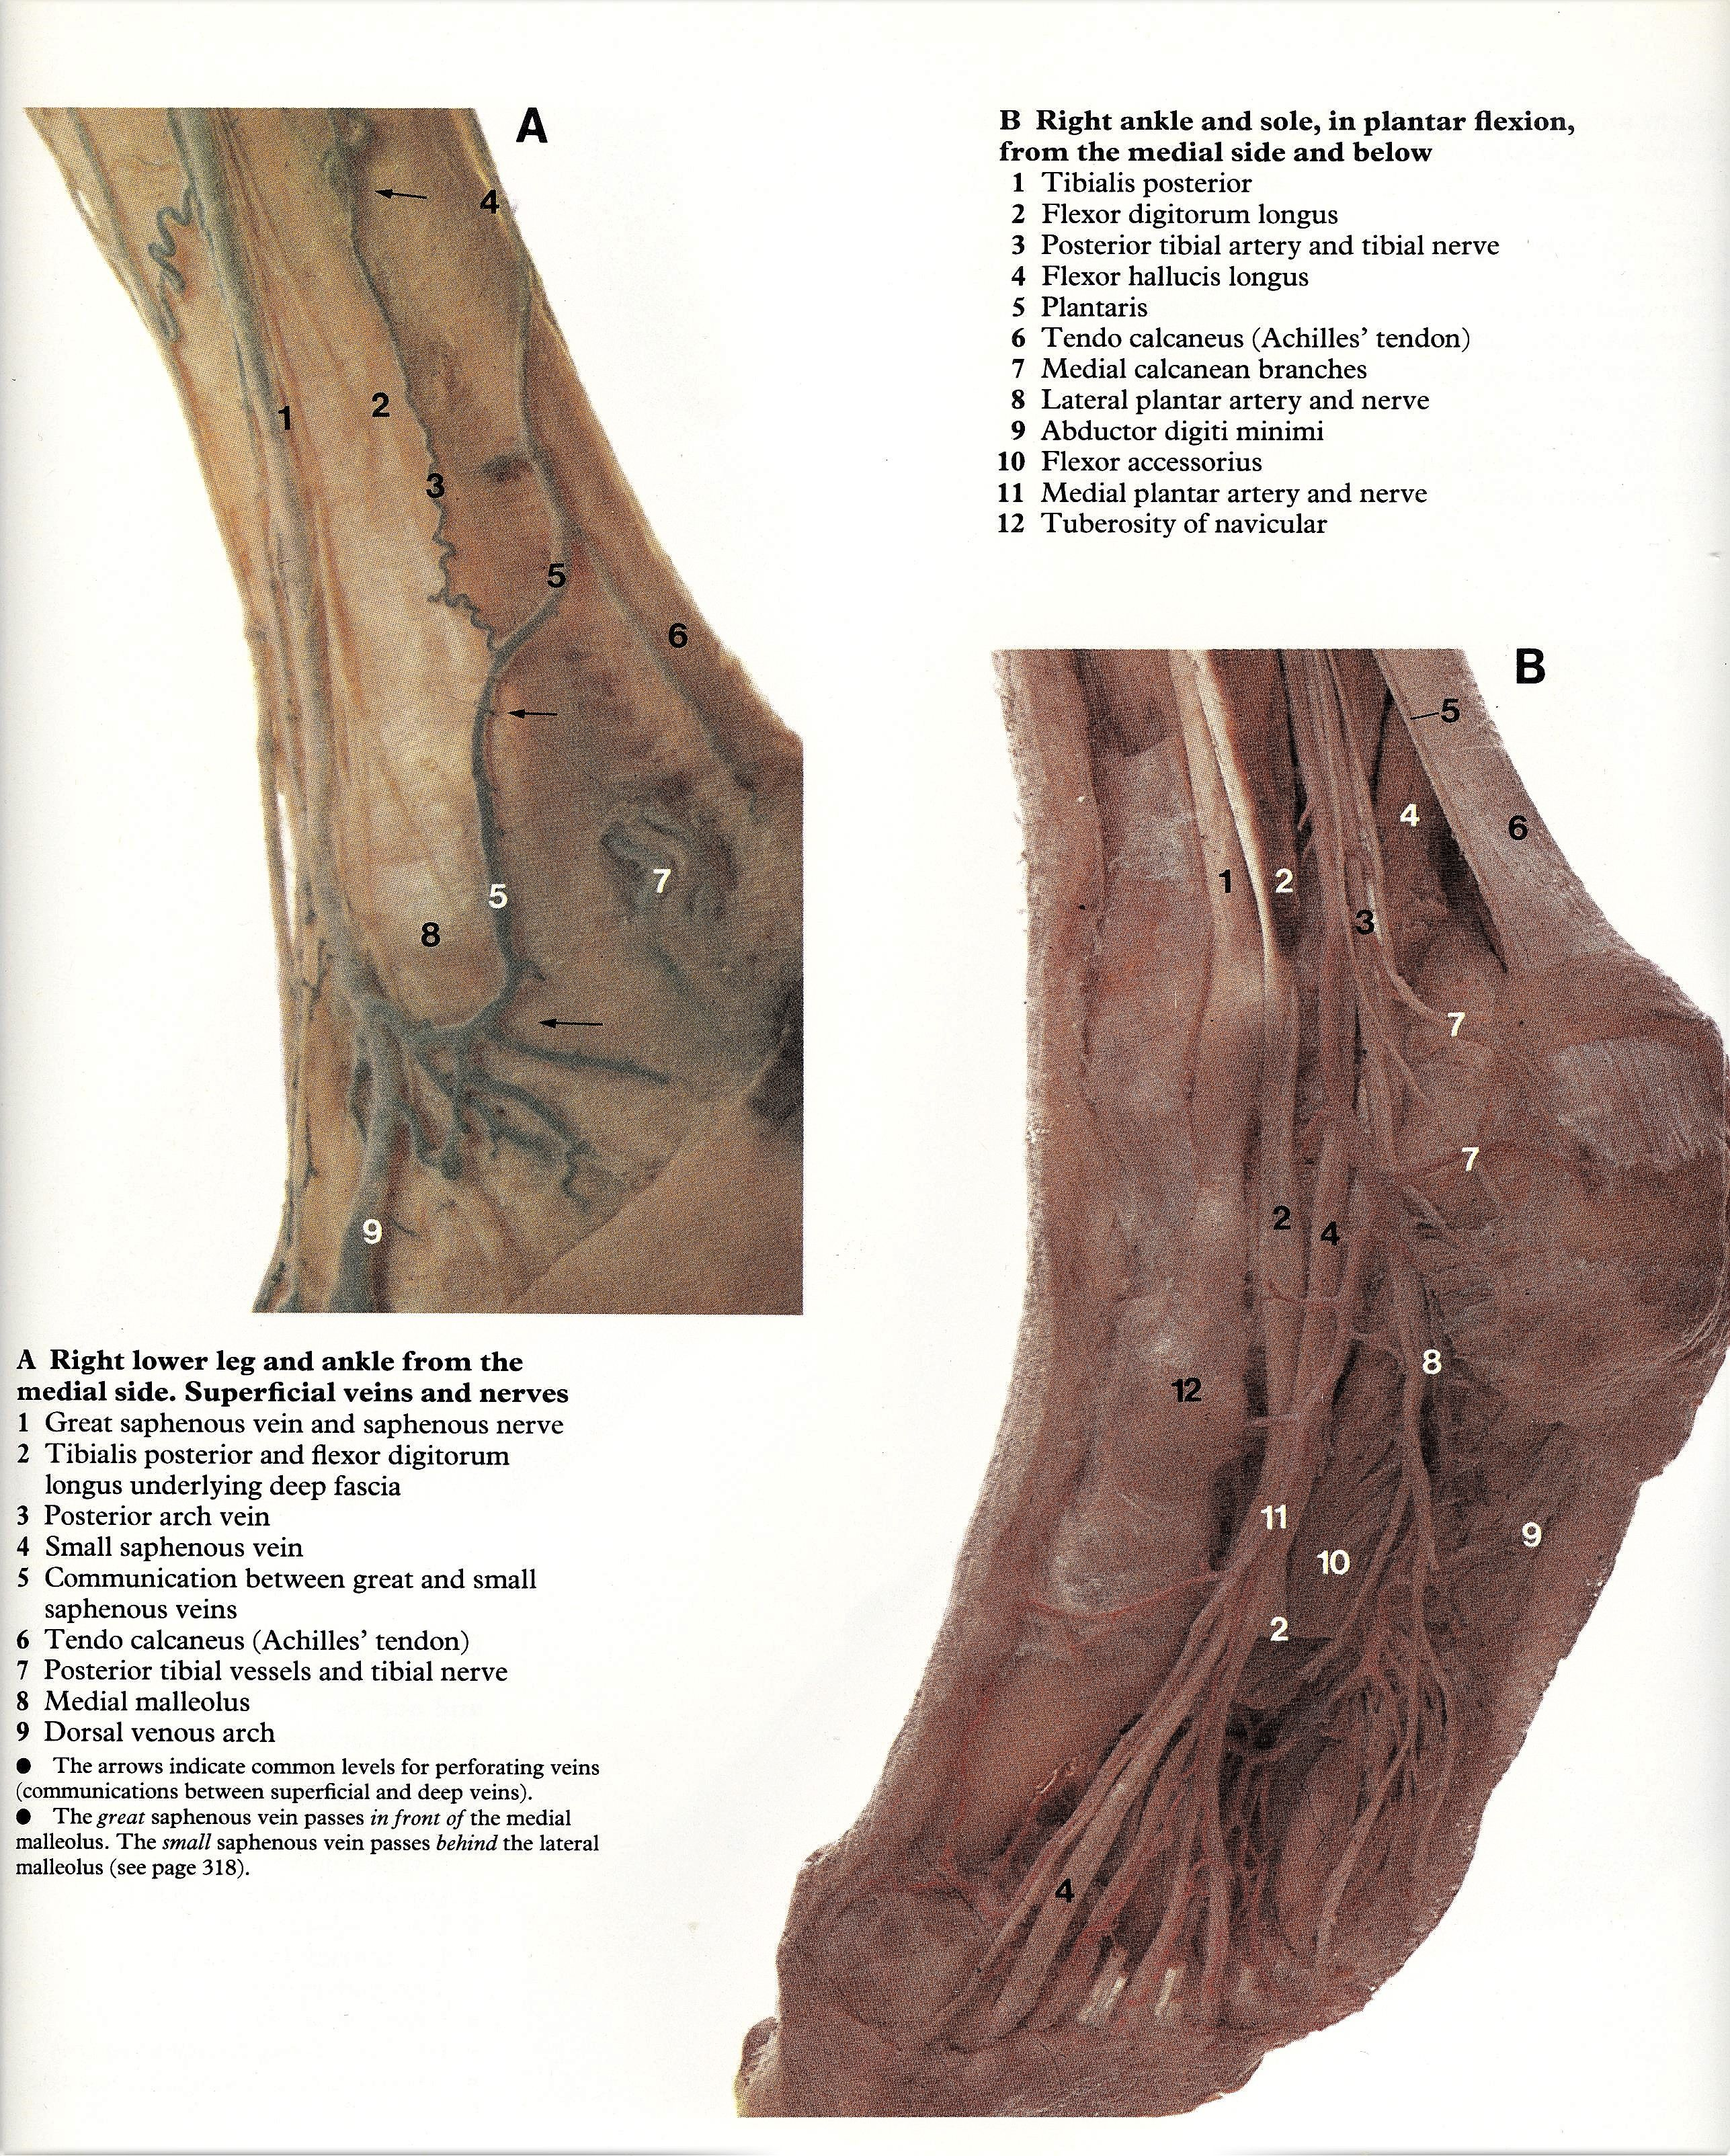 Pin by Bengt Sandberg on Part 6 of 6 - Lower limb - Atlas of Human ...